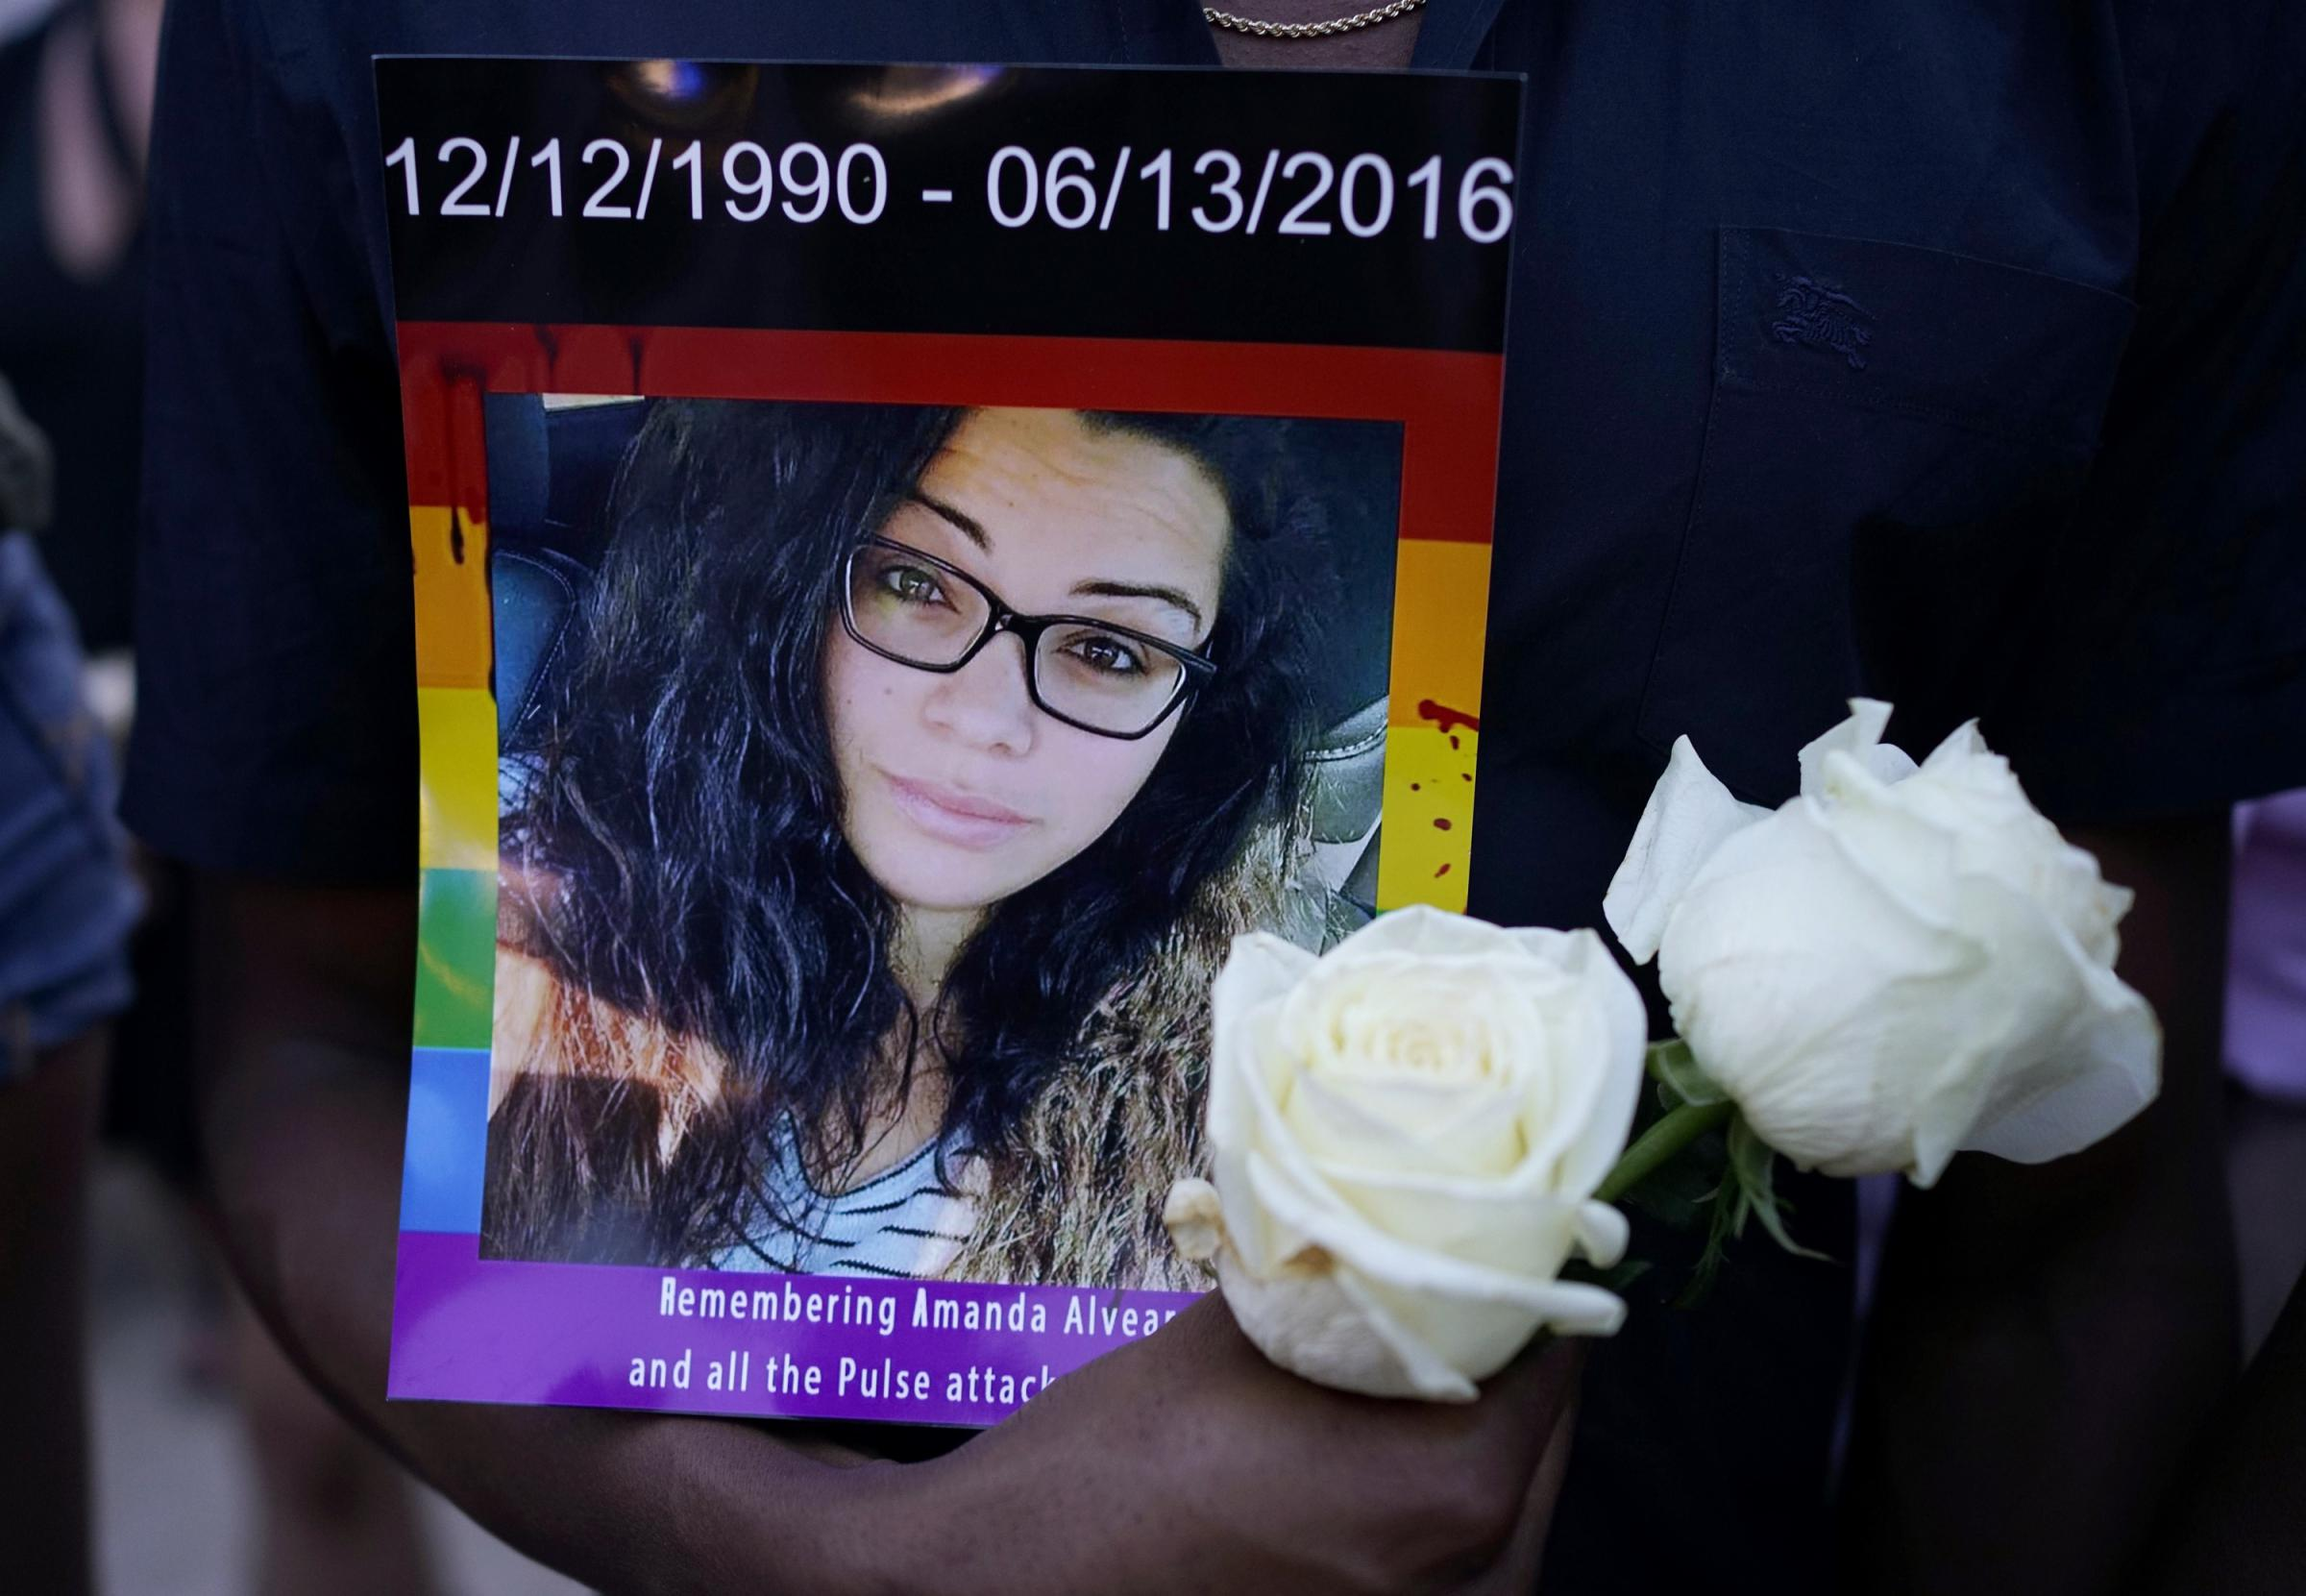 They Were So Beautiful': Remembering Those Murdered In Orlando | St